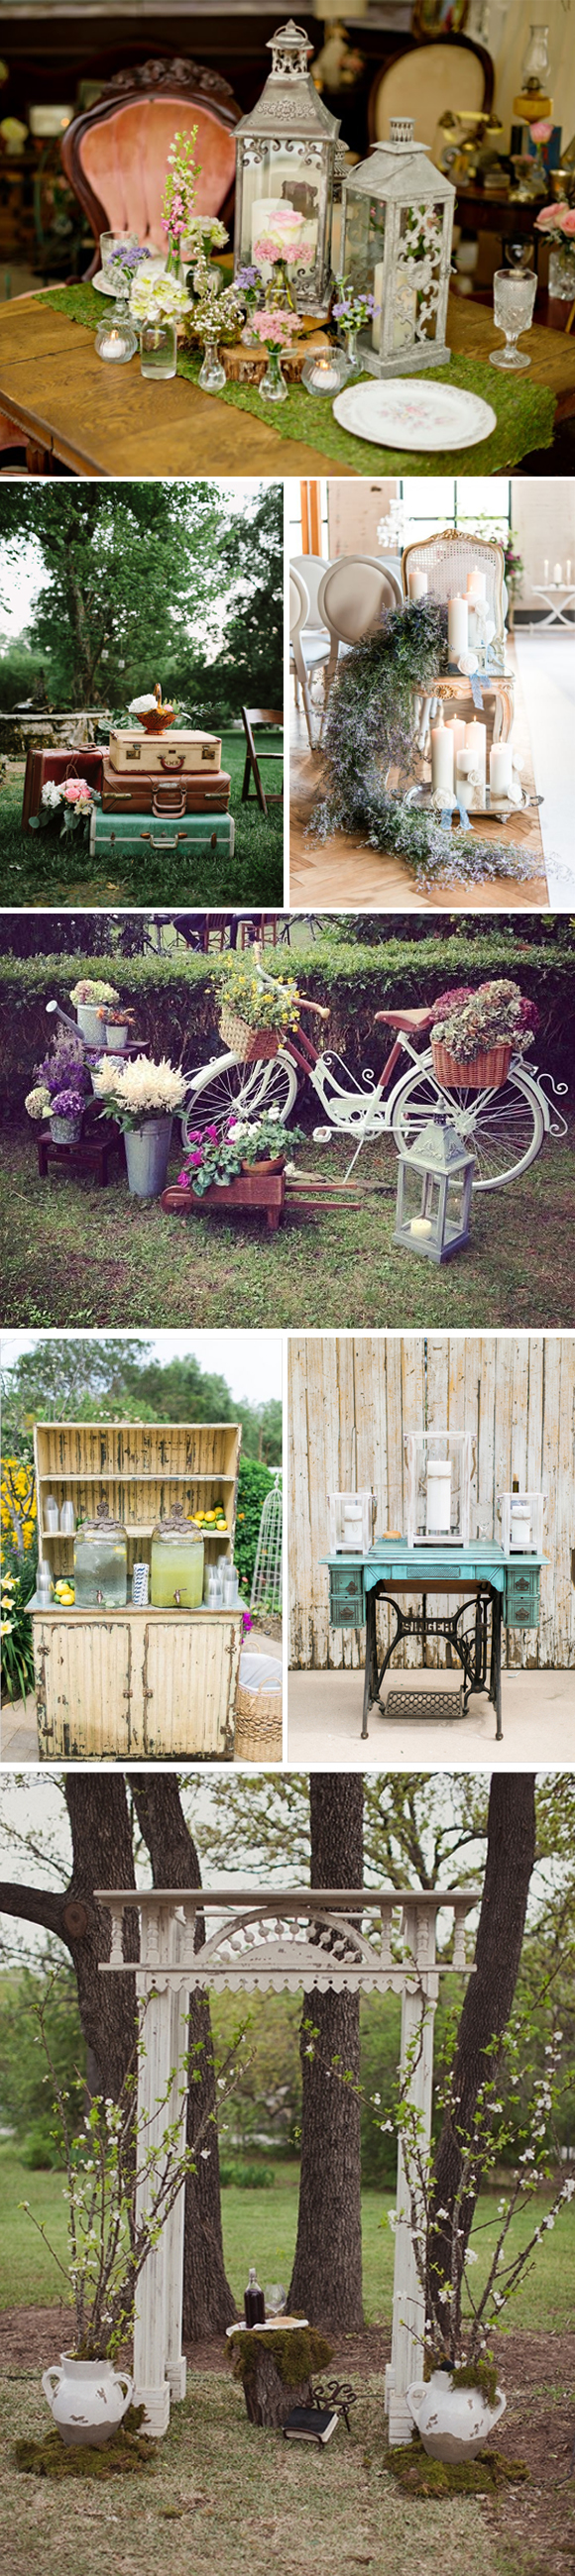 Pasteles boda bodaestilo la web de tu boda rachael edwards for Web decoracion